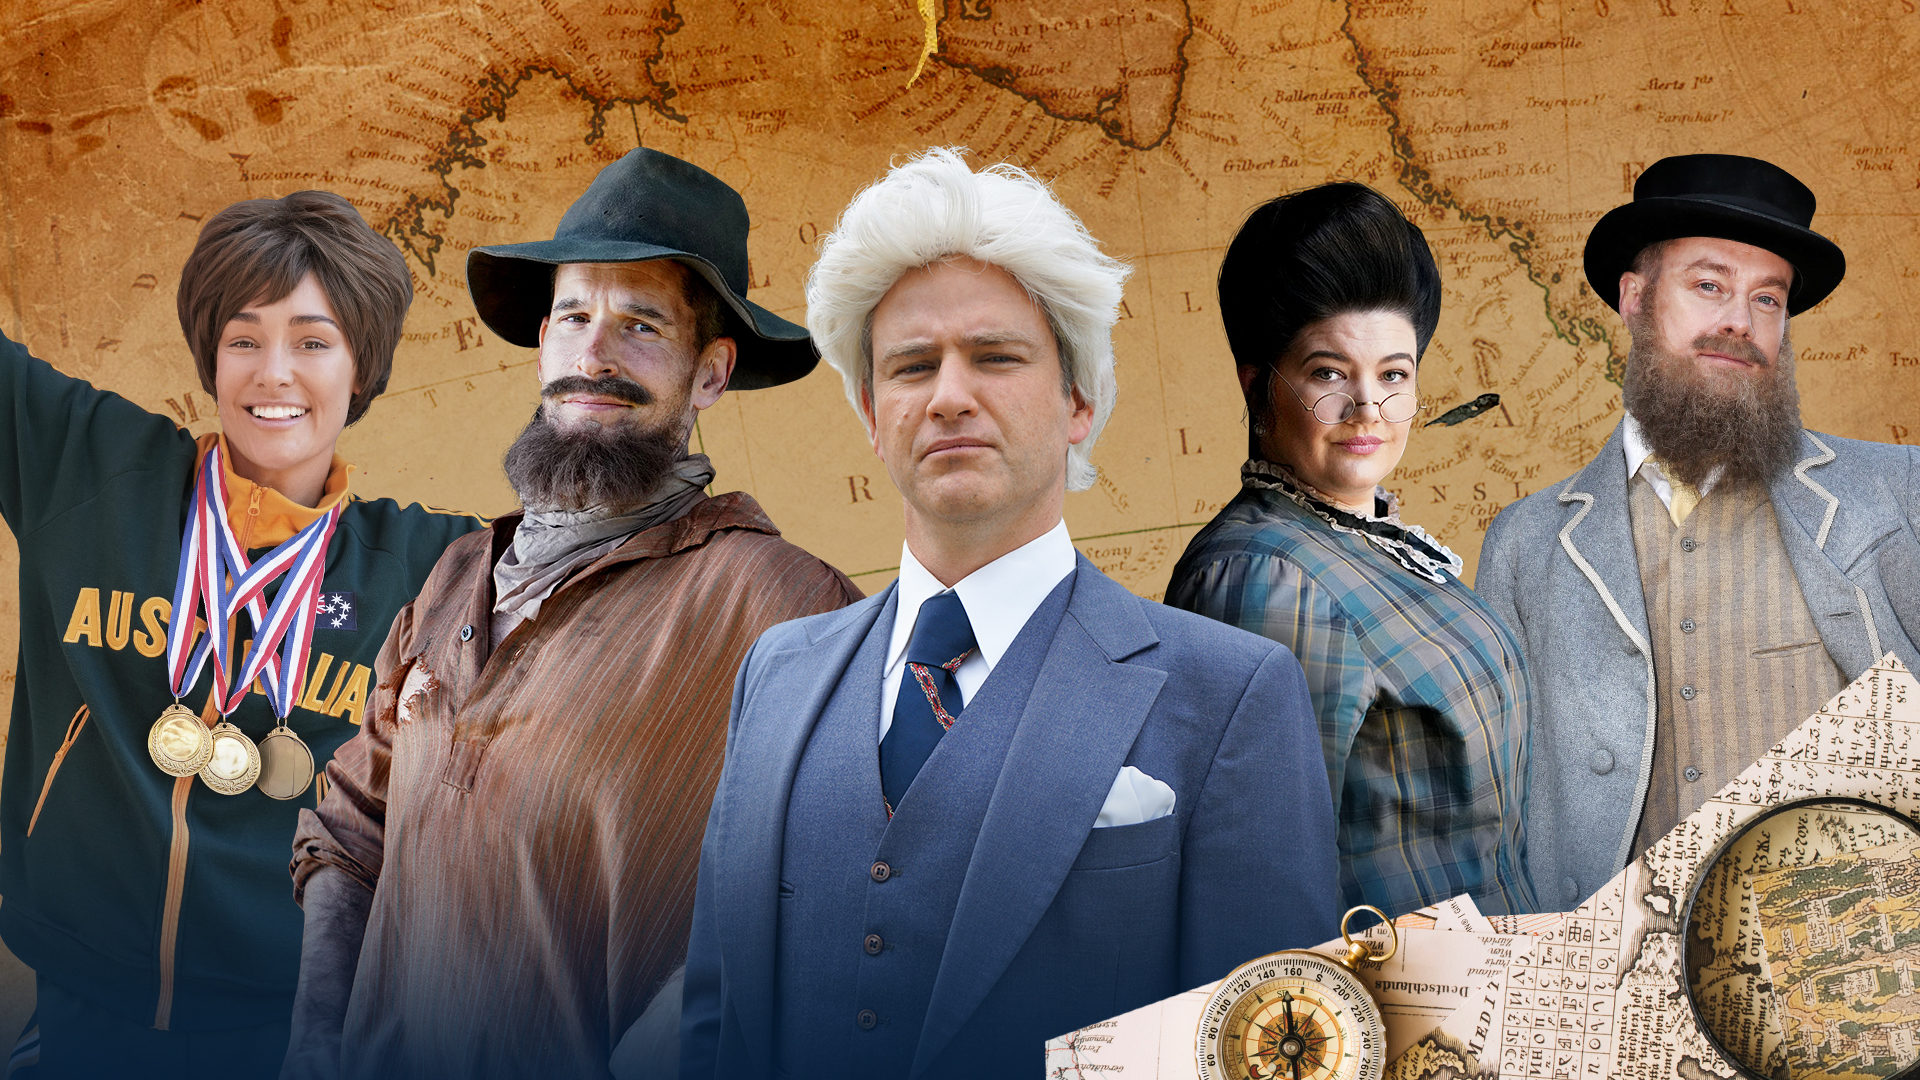 Drunk History Christmas Special 2020 Settle in for an intoxicating and patriotic history lesson on